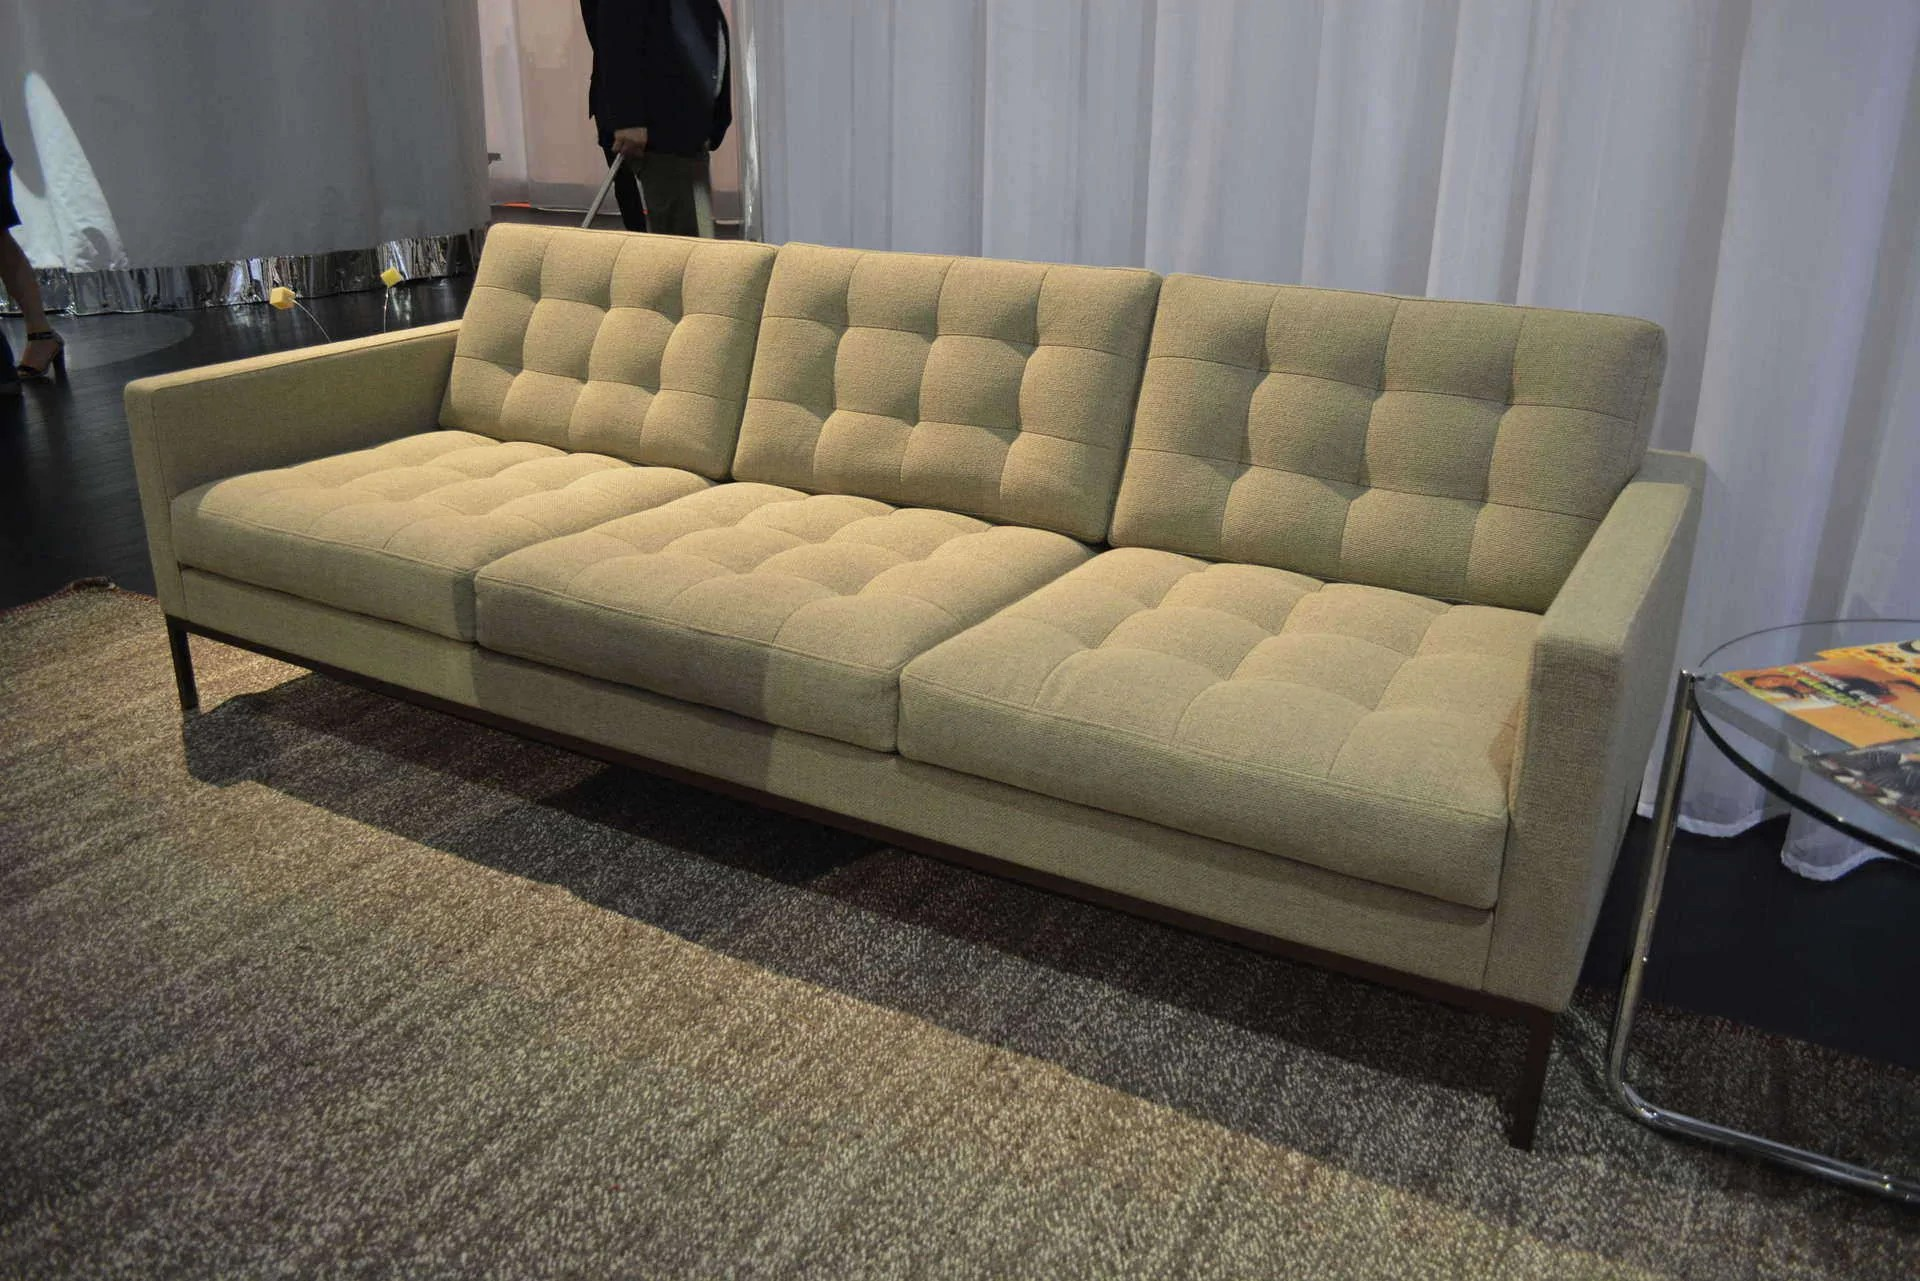 Florence Knoll Sessel Florence Knoll Relax 3 Seat Sofa